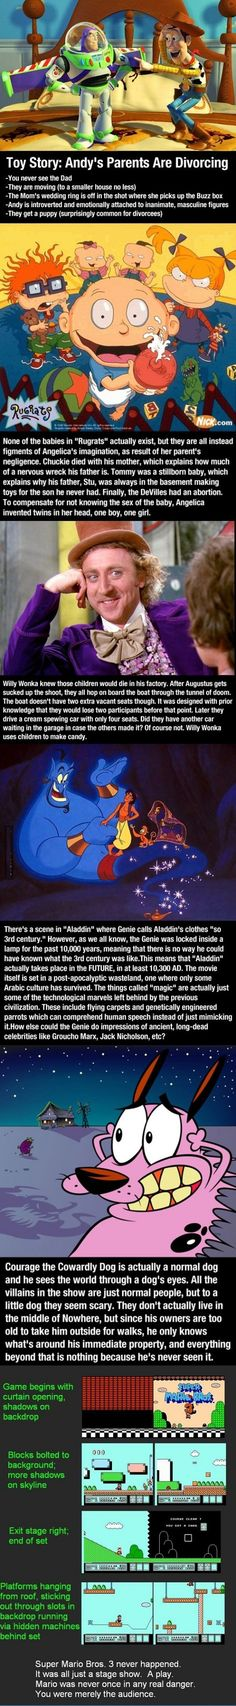 Things you did not know about your childhood | Things for Geeks